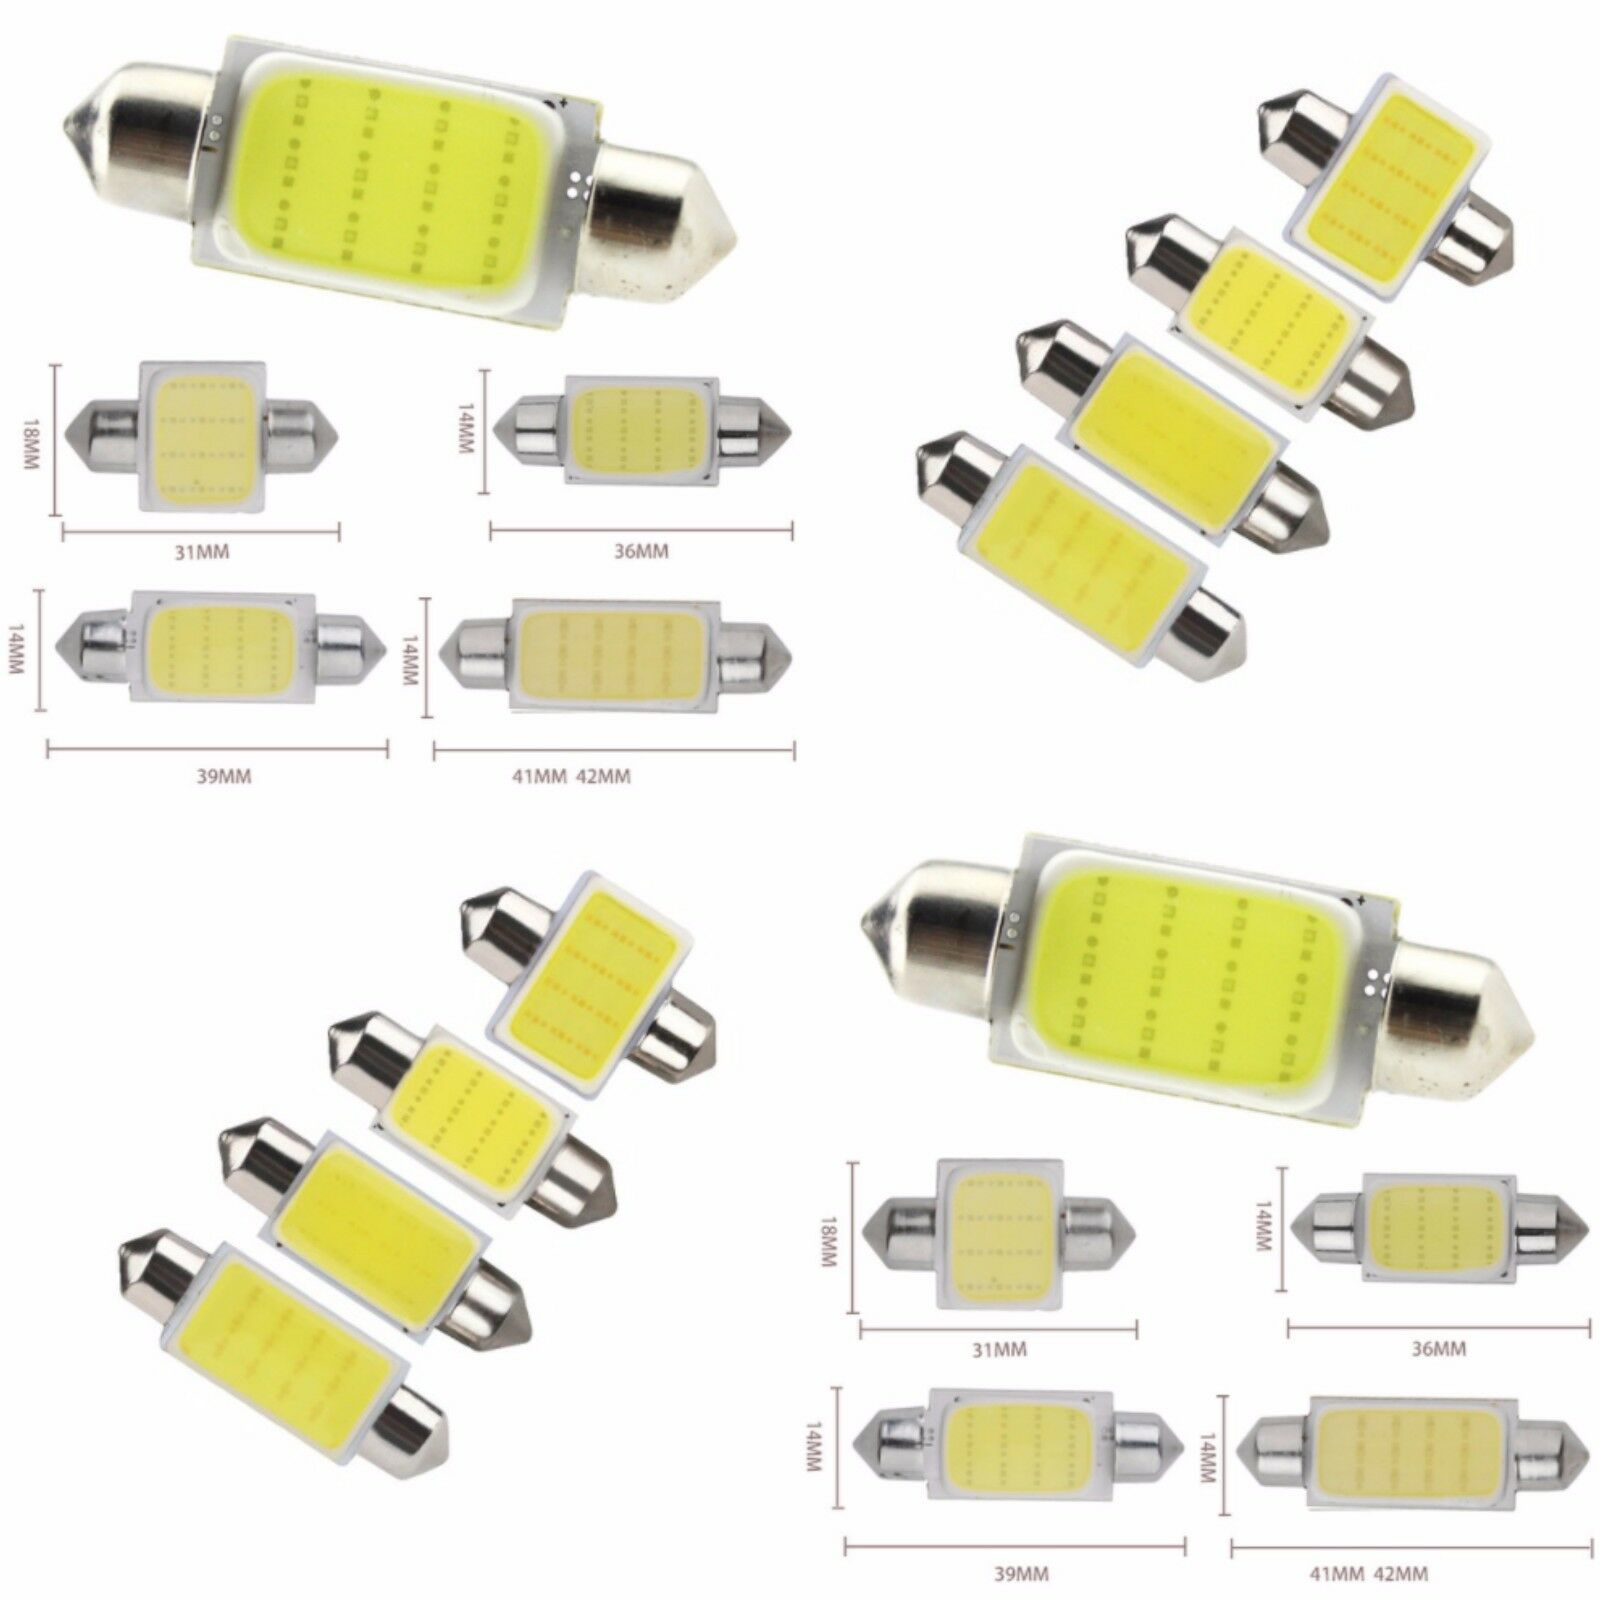 LED 12v CAR BULB C5W COB XENON WHITE FESTOON NUMBER PLATE INTERIOR 31 36 39 42MM